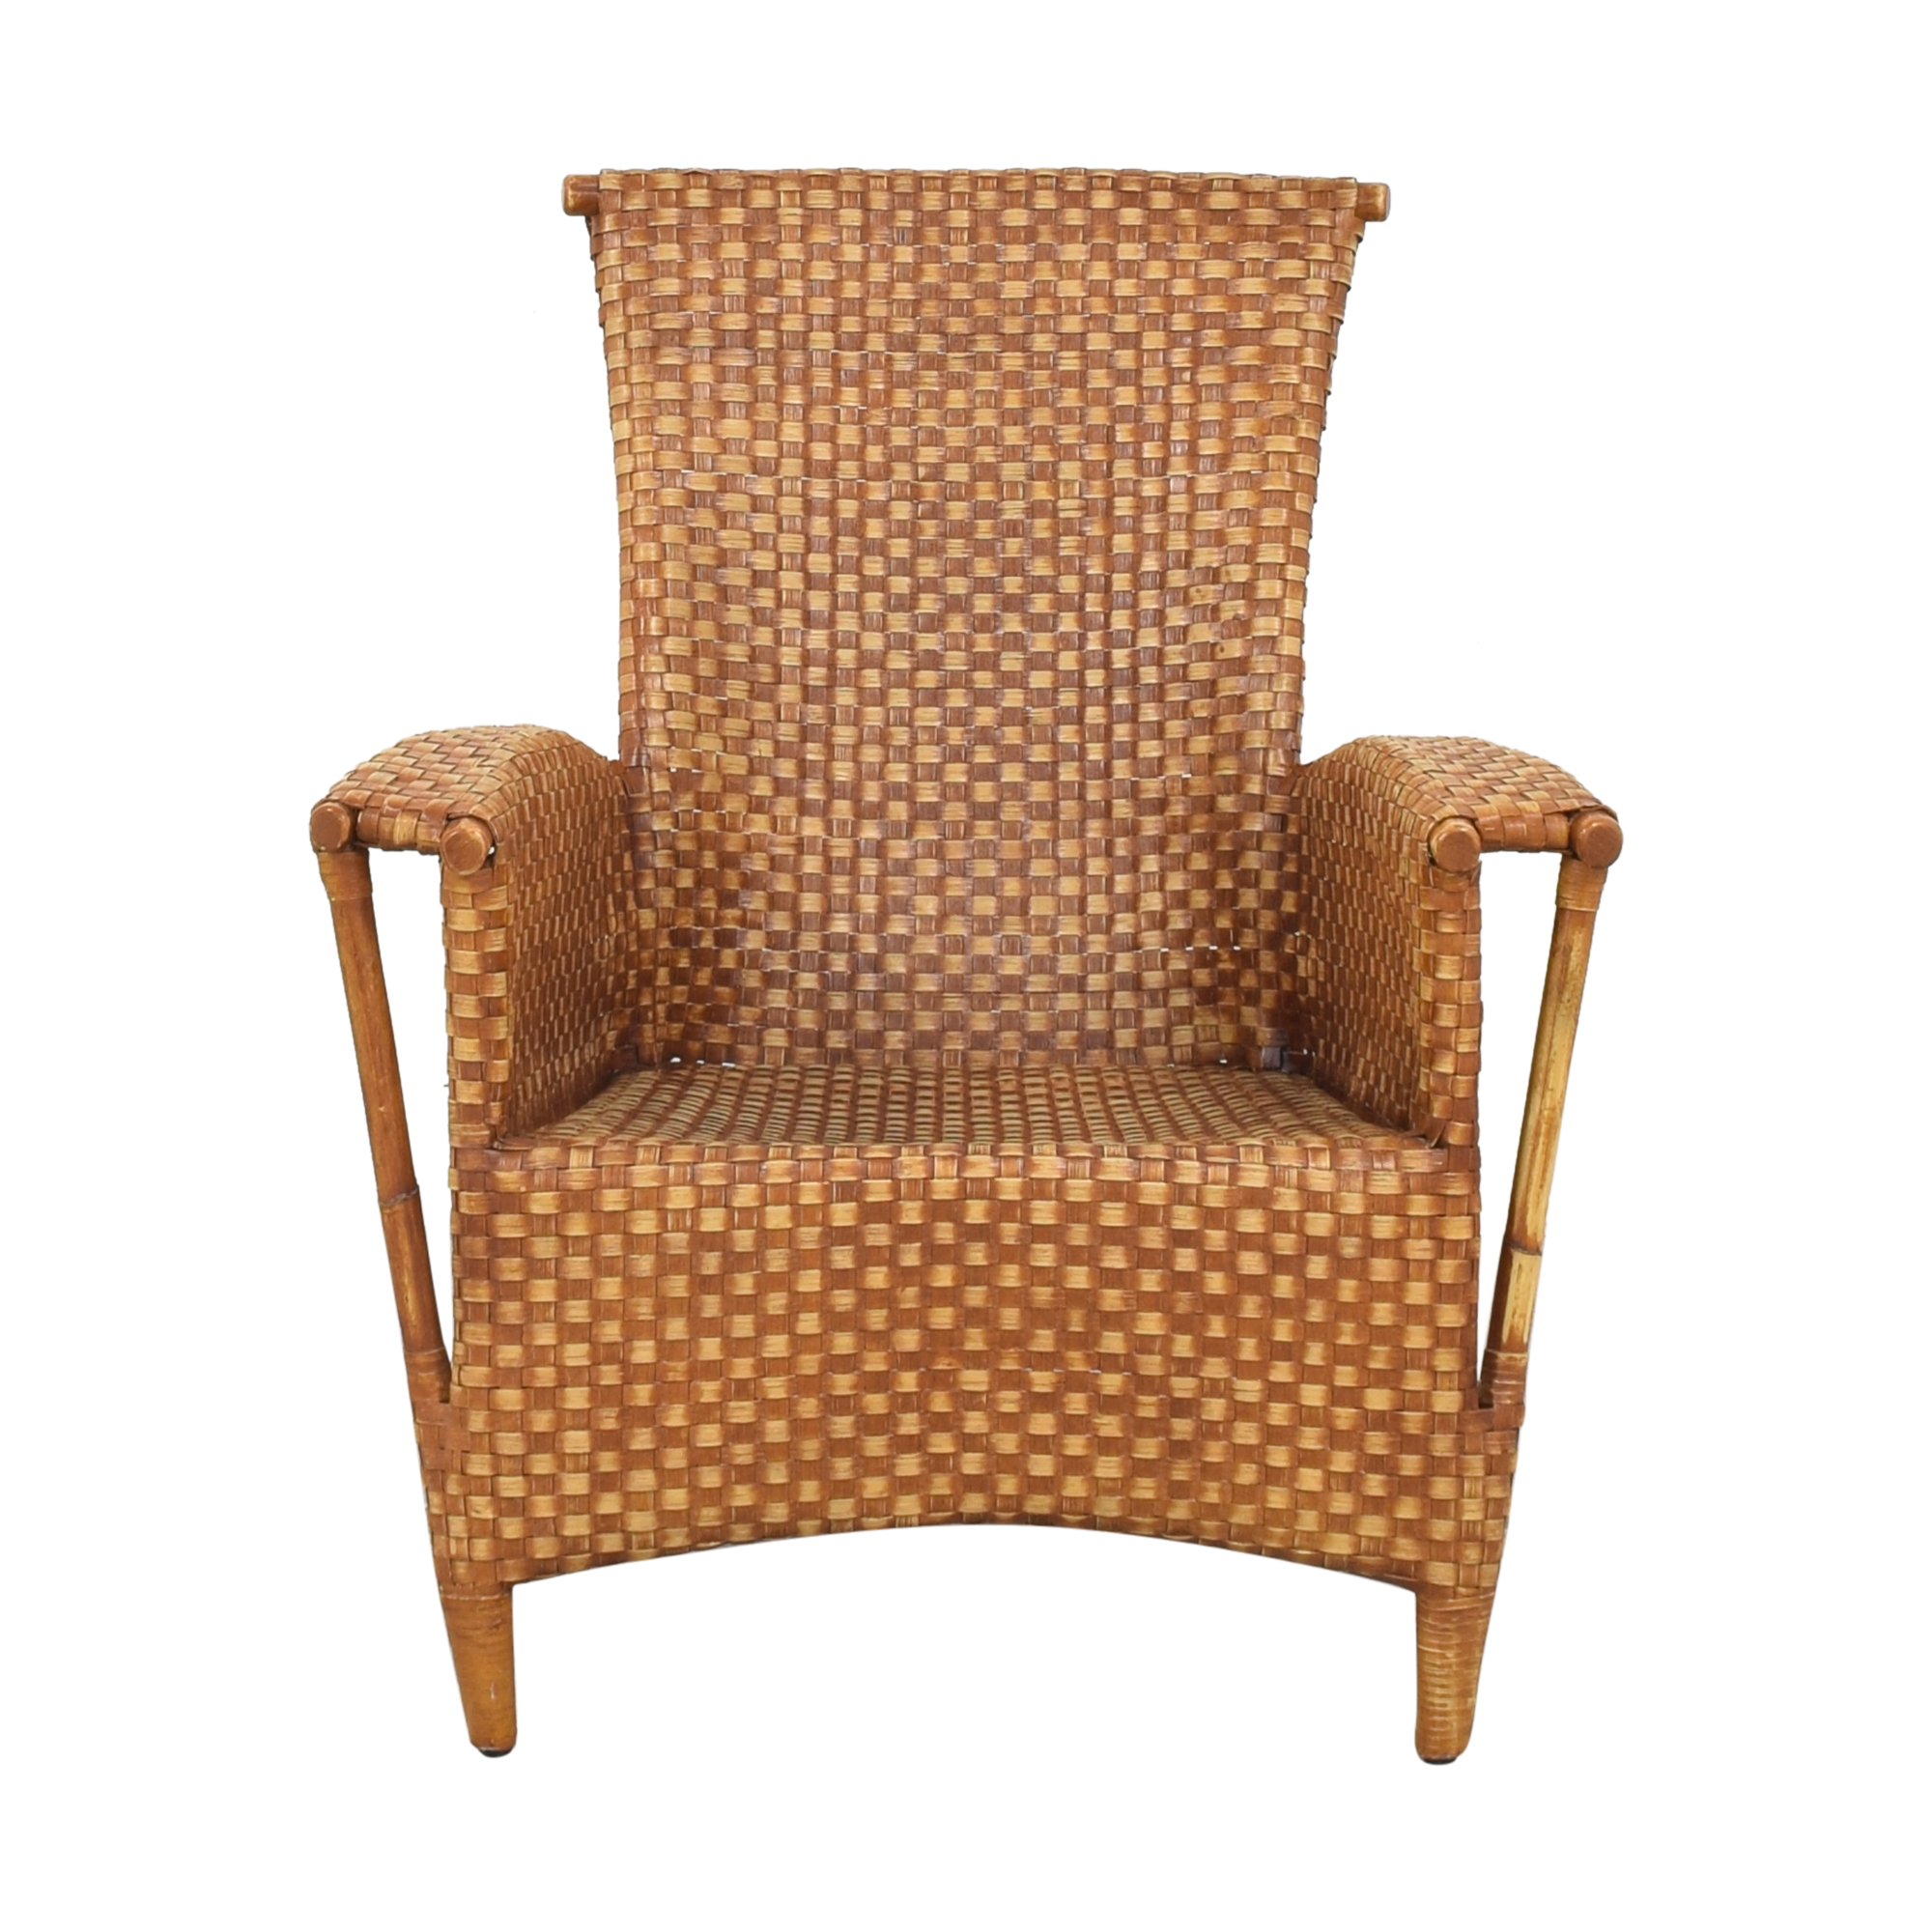 Crate & Barrel Crat & Barrel Wicker Chair pa